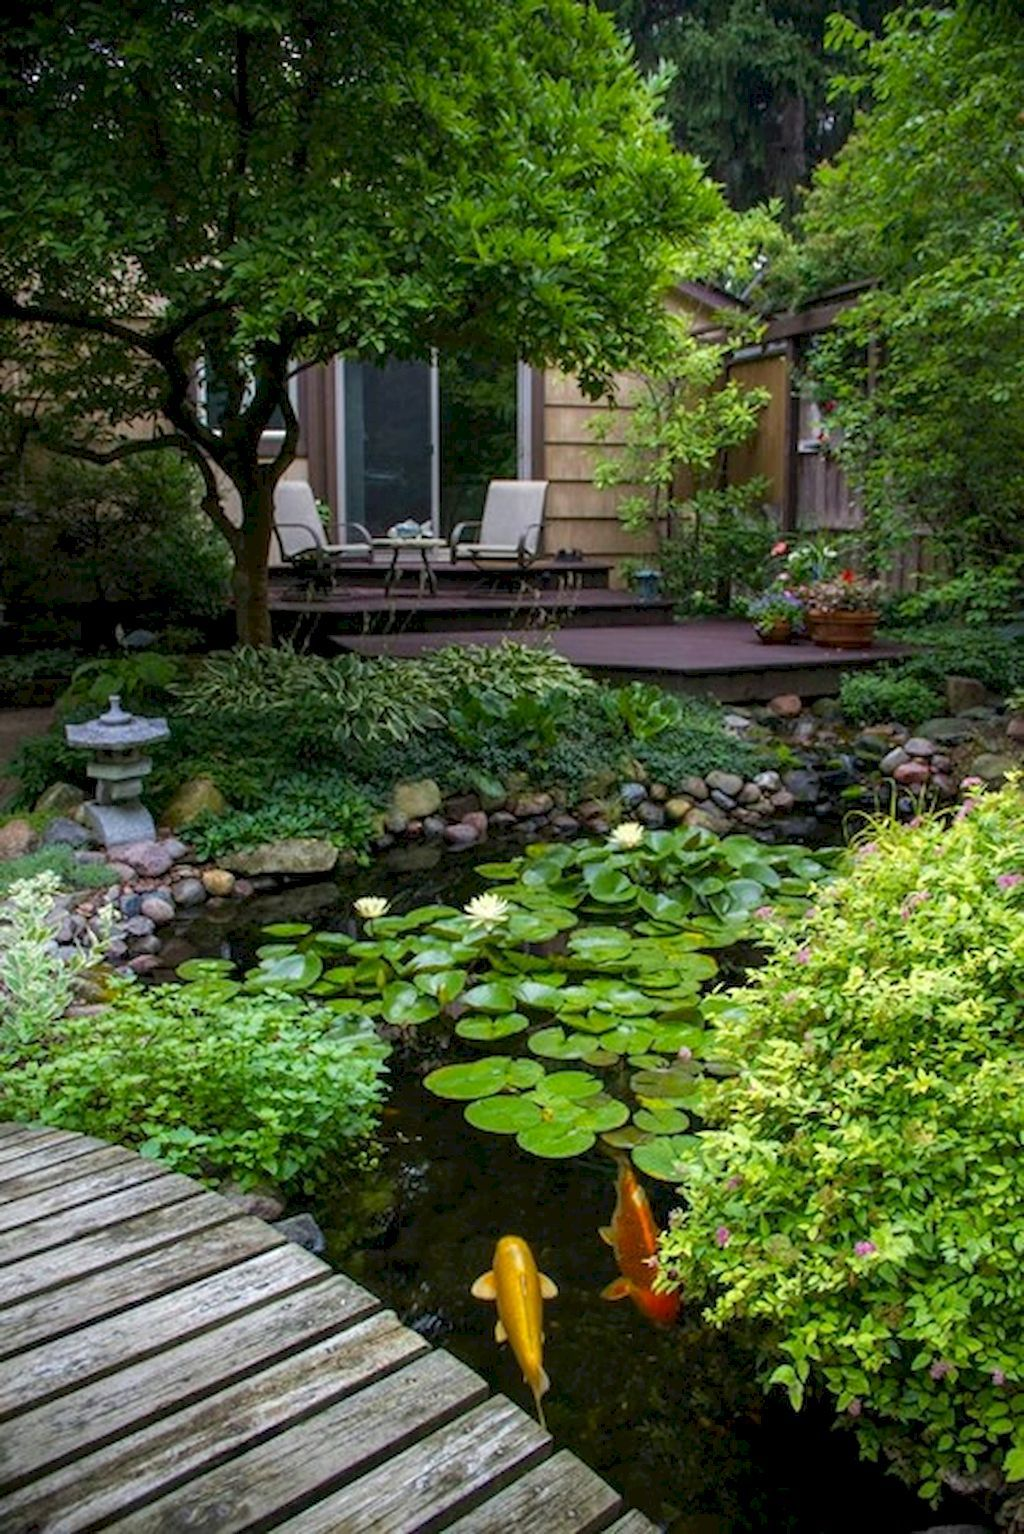 The 20 Best DIY Fun Landscaping Ideas For Your Dream Backyard on Backyard Pond Landscaping Ideas  id=34417